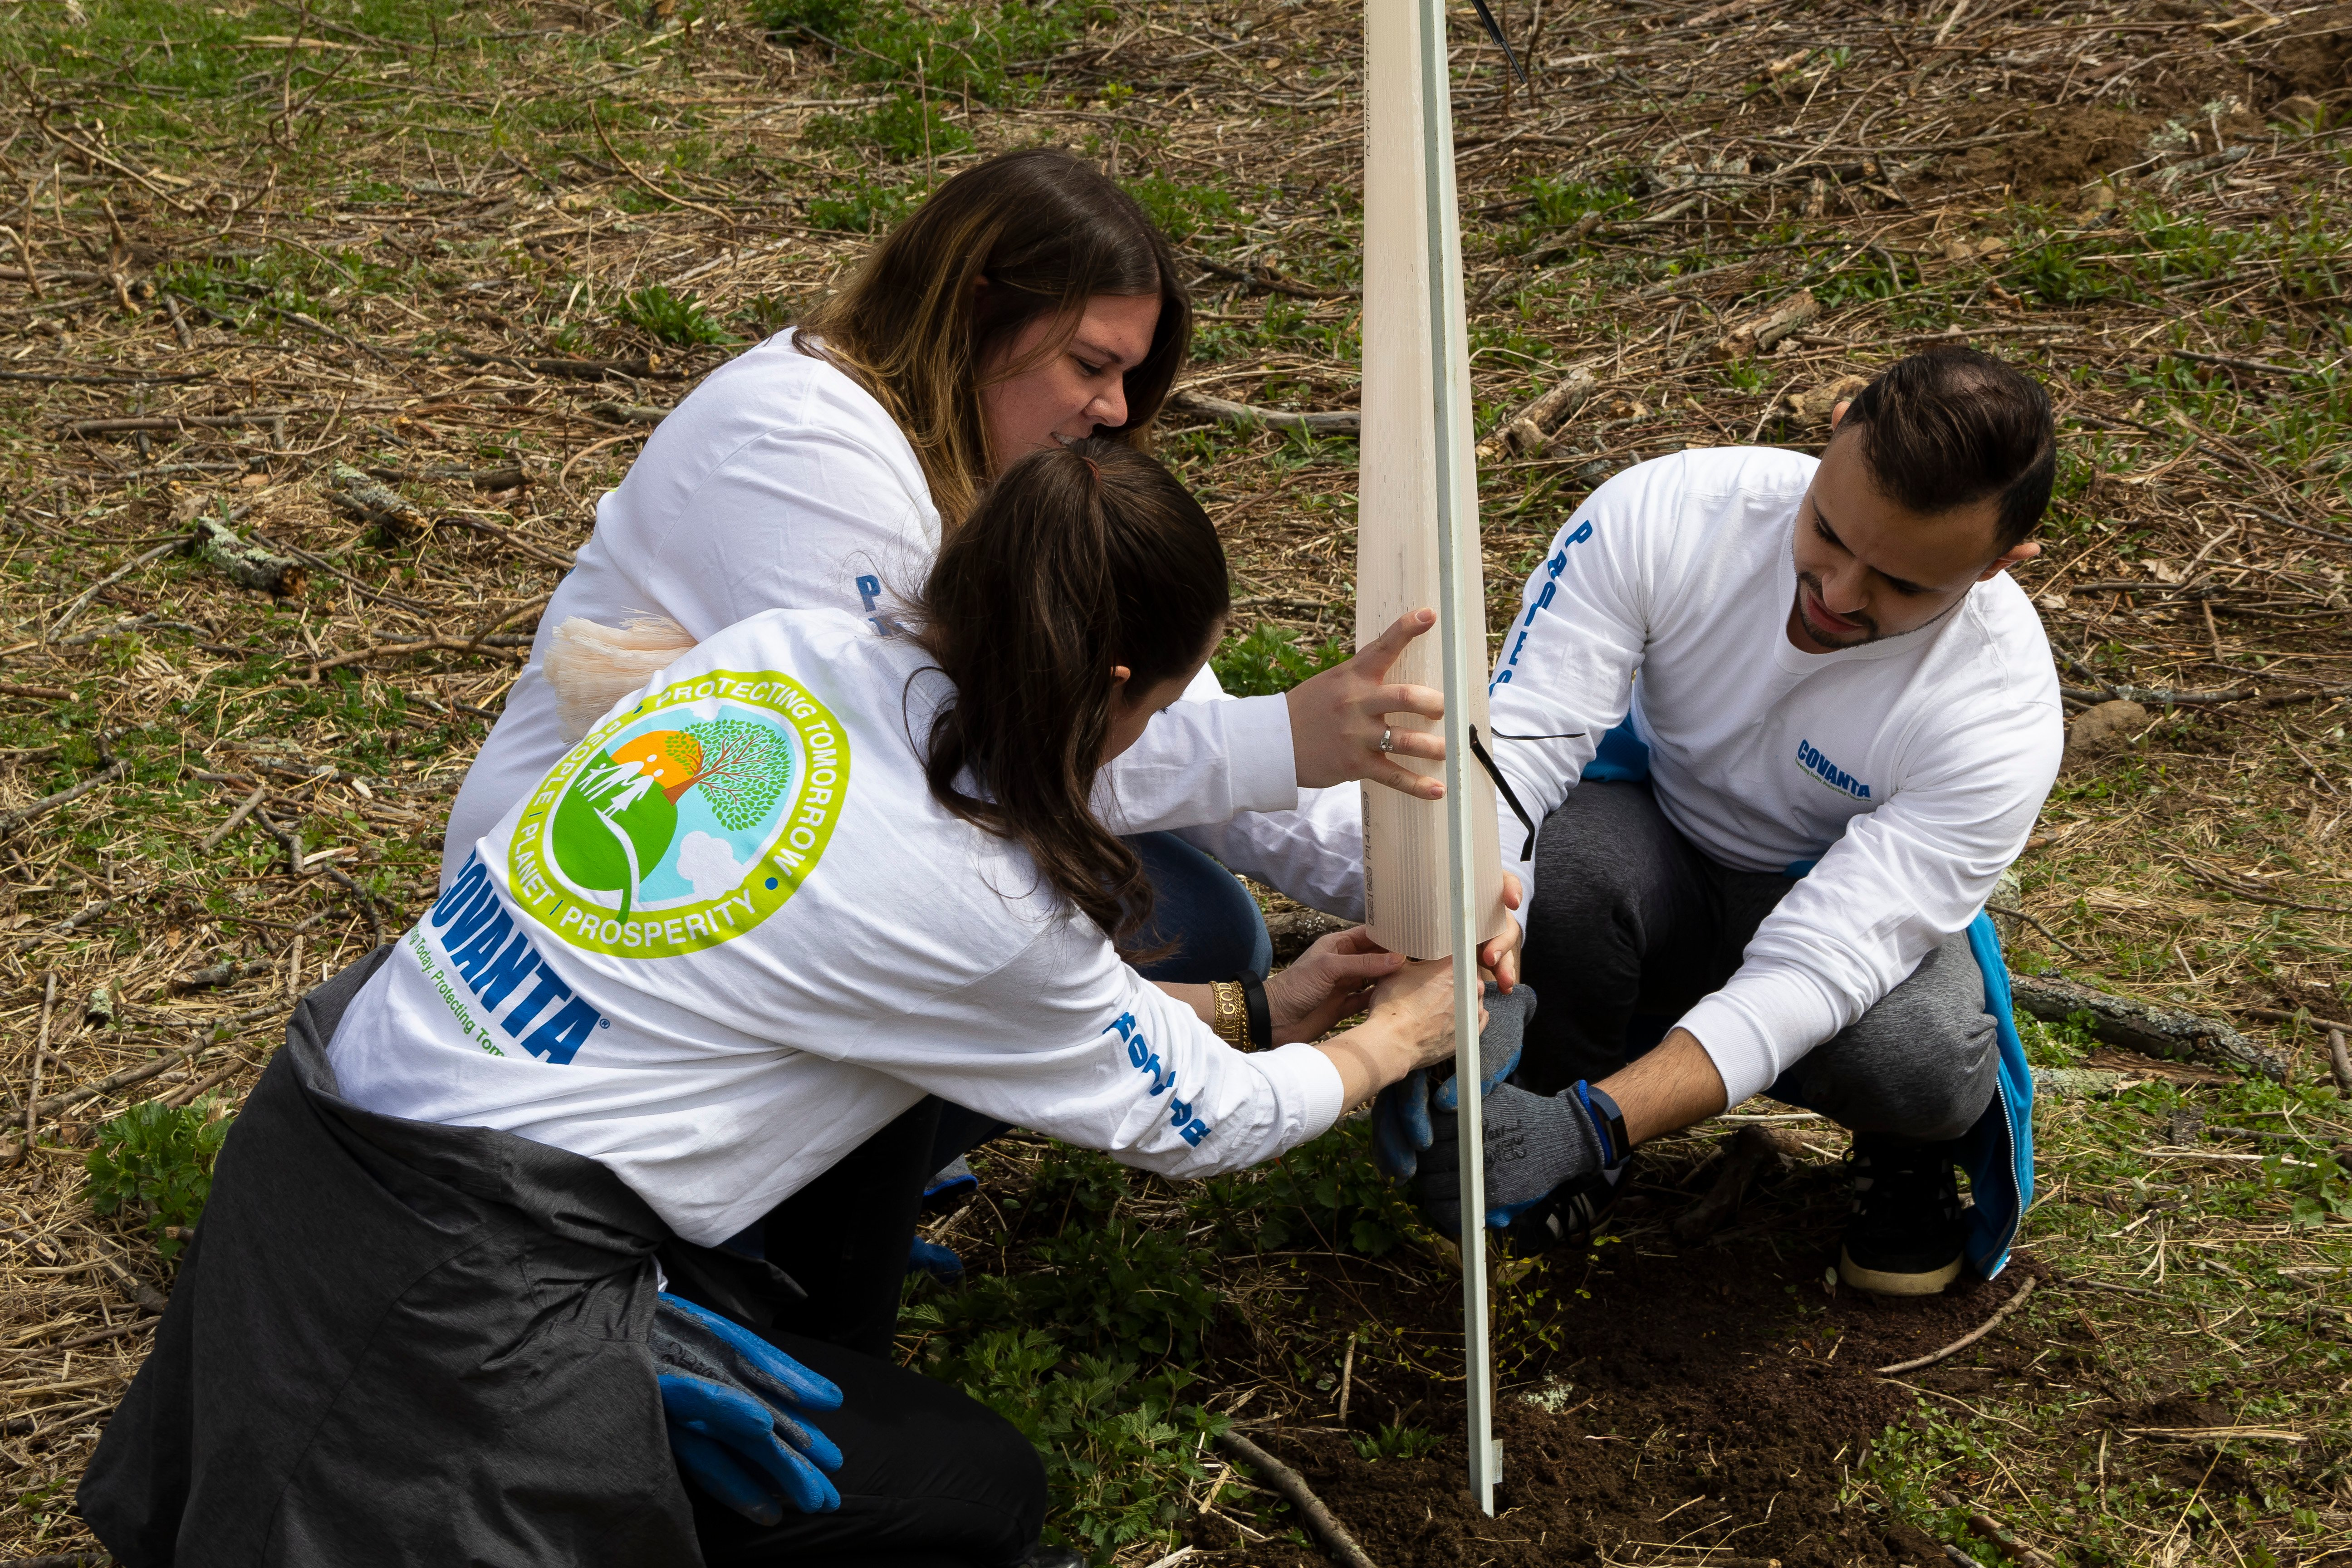 Covanta employees planting trees and flowers in a Morristown park